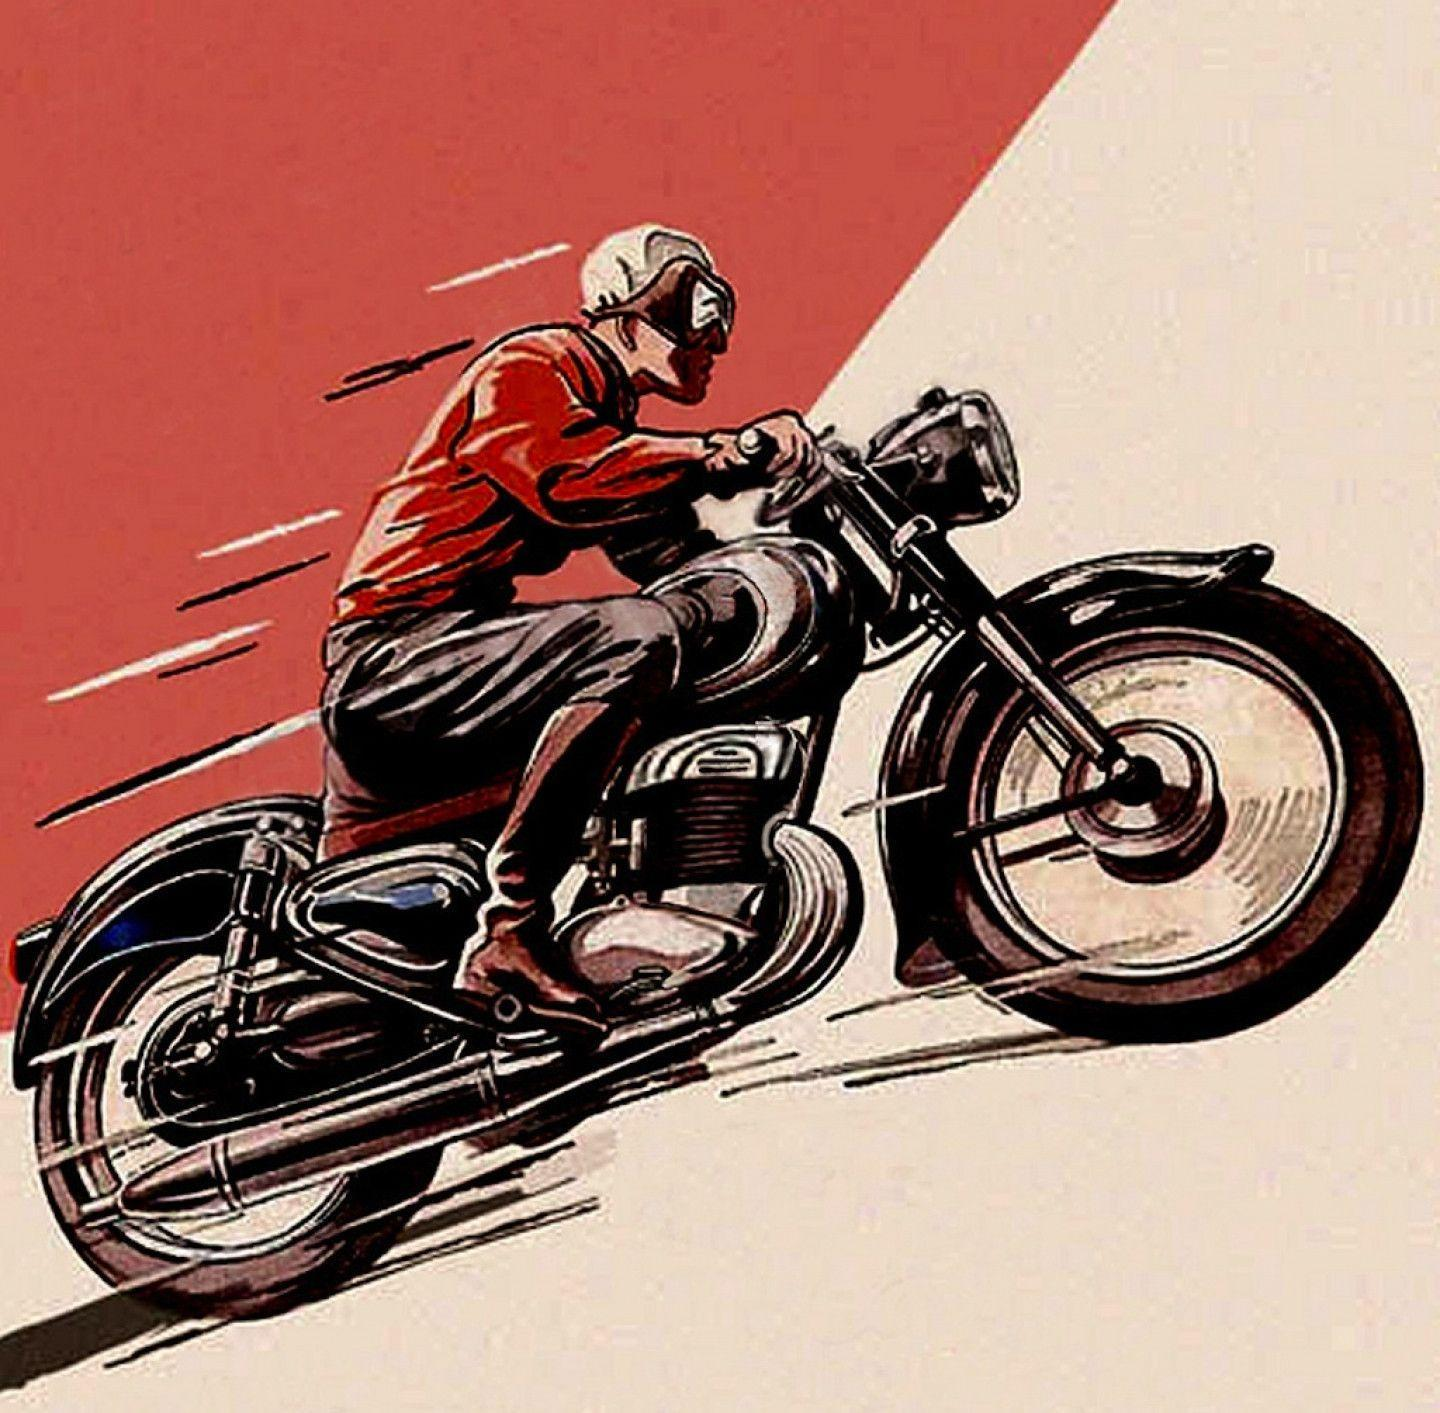 Vintage Motorcycle Wallpapers